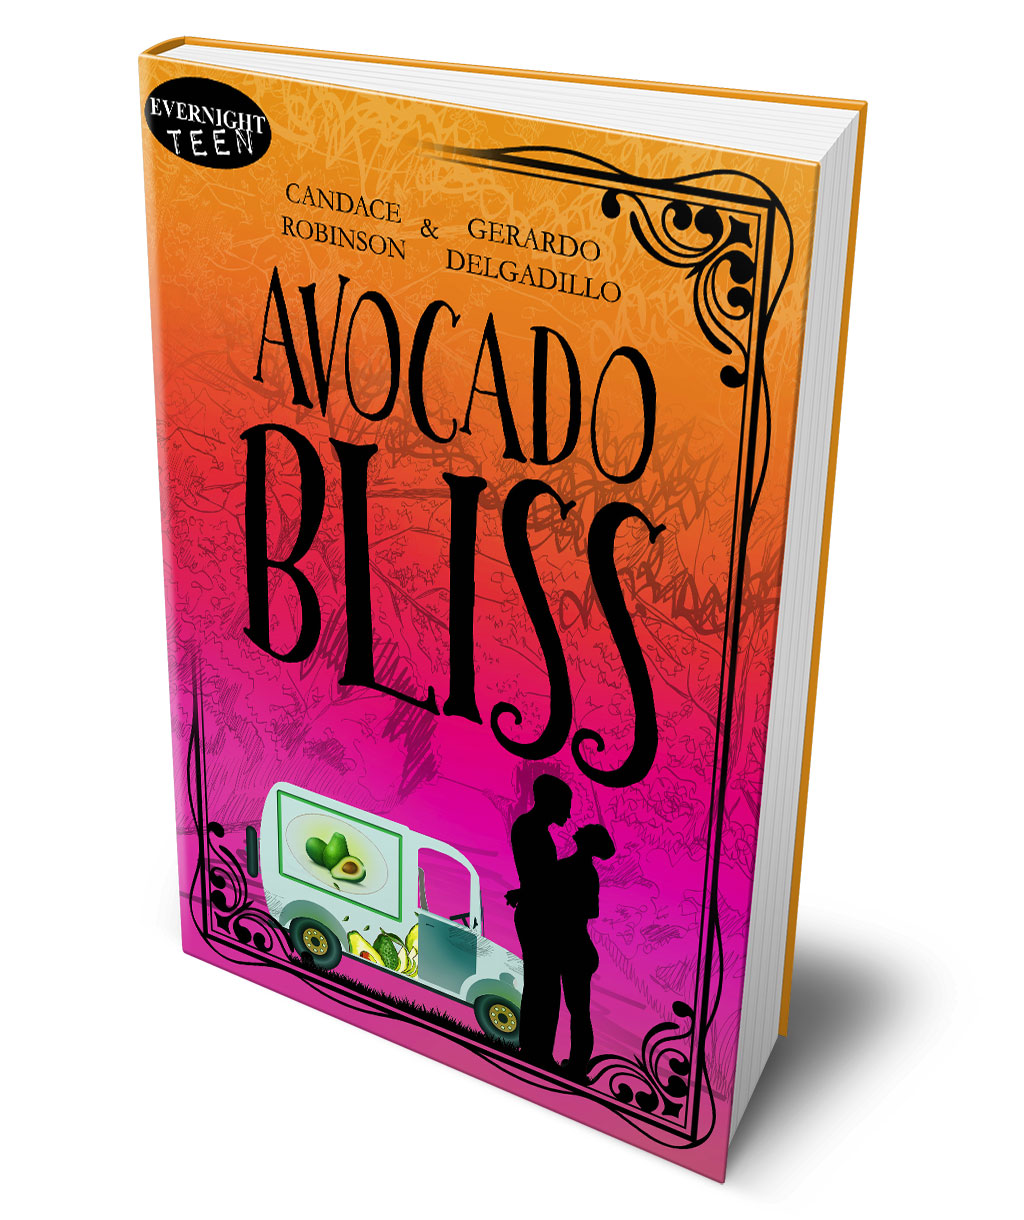 Avocado Bliss by Candace Robinson and Gerardo Delgadillo